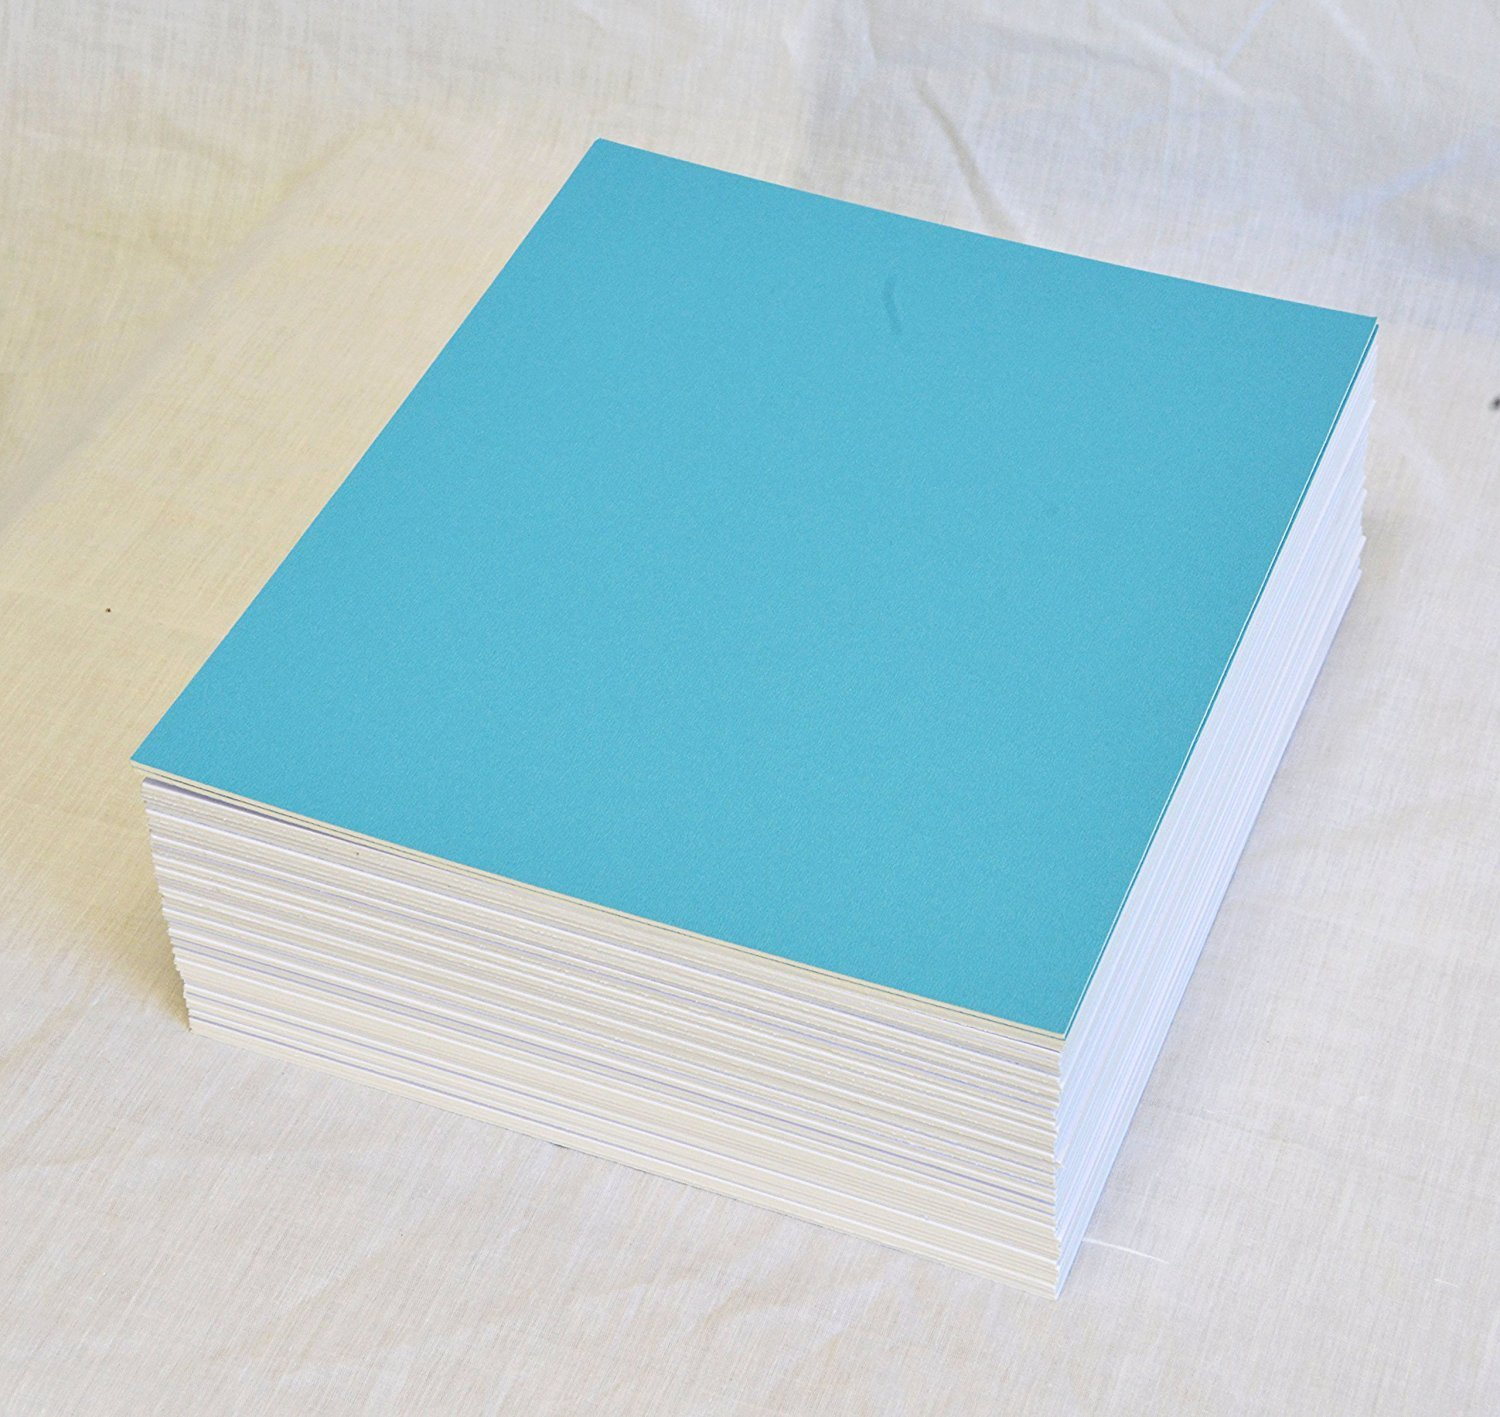 topseller100, Pack of 50 sheets 16x20 UNCUT matboard / mat boards (light blue) by Unknown